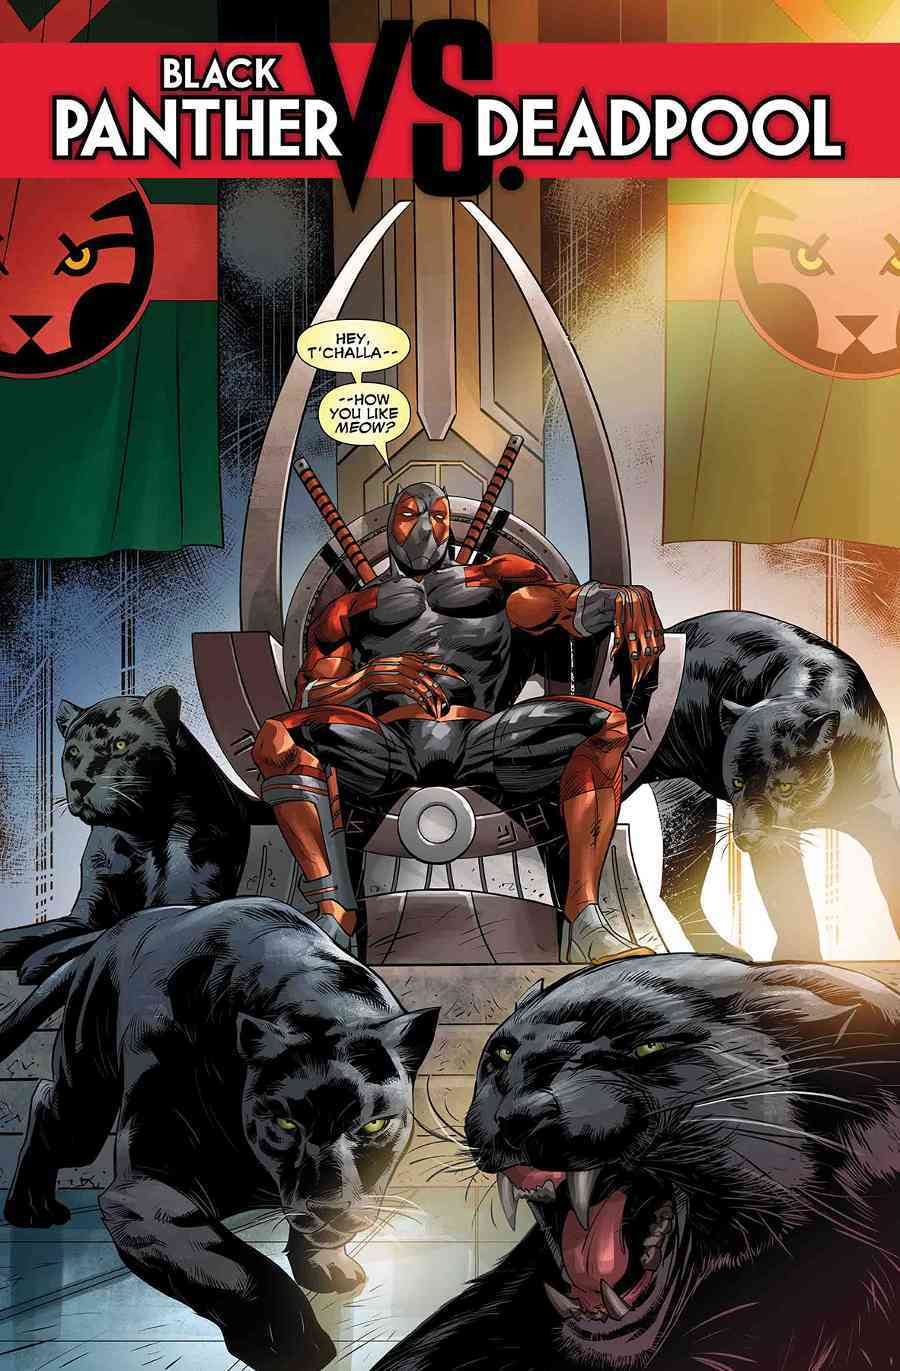 It Looks Like Deadpool Is Going To Be Black Panther In Marvel Comics